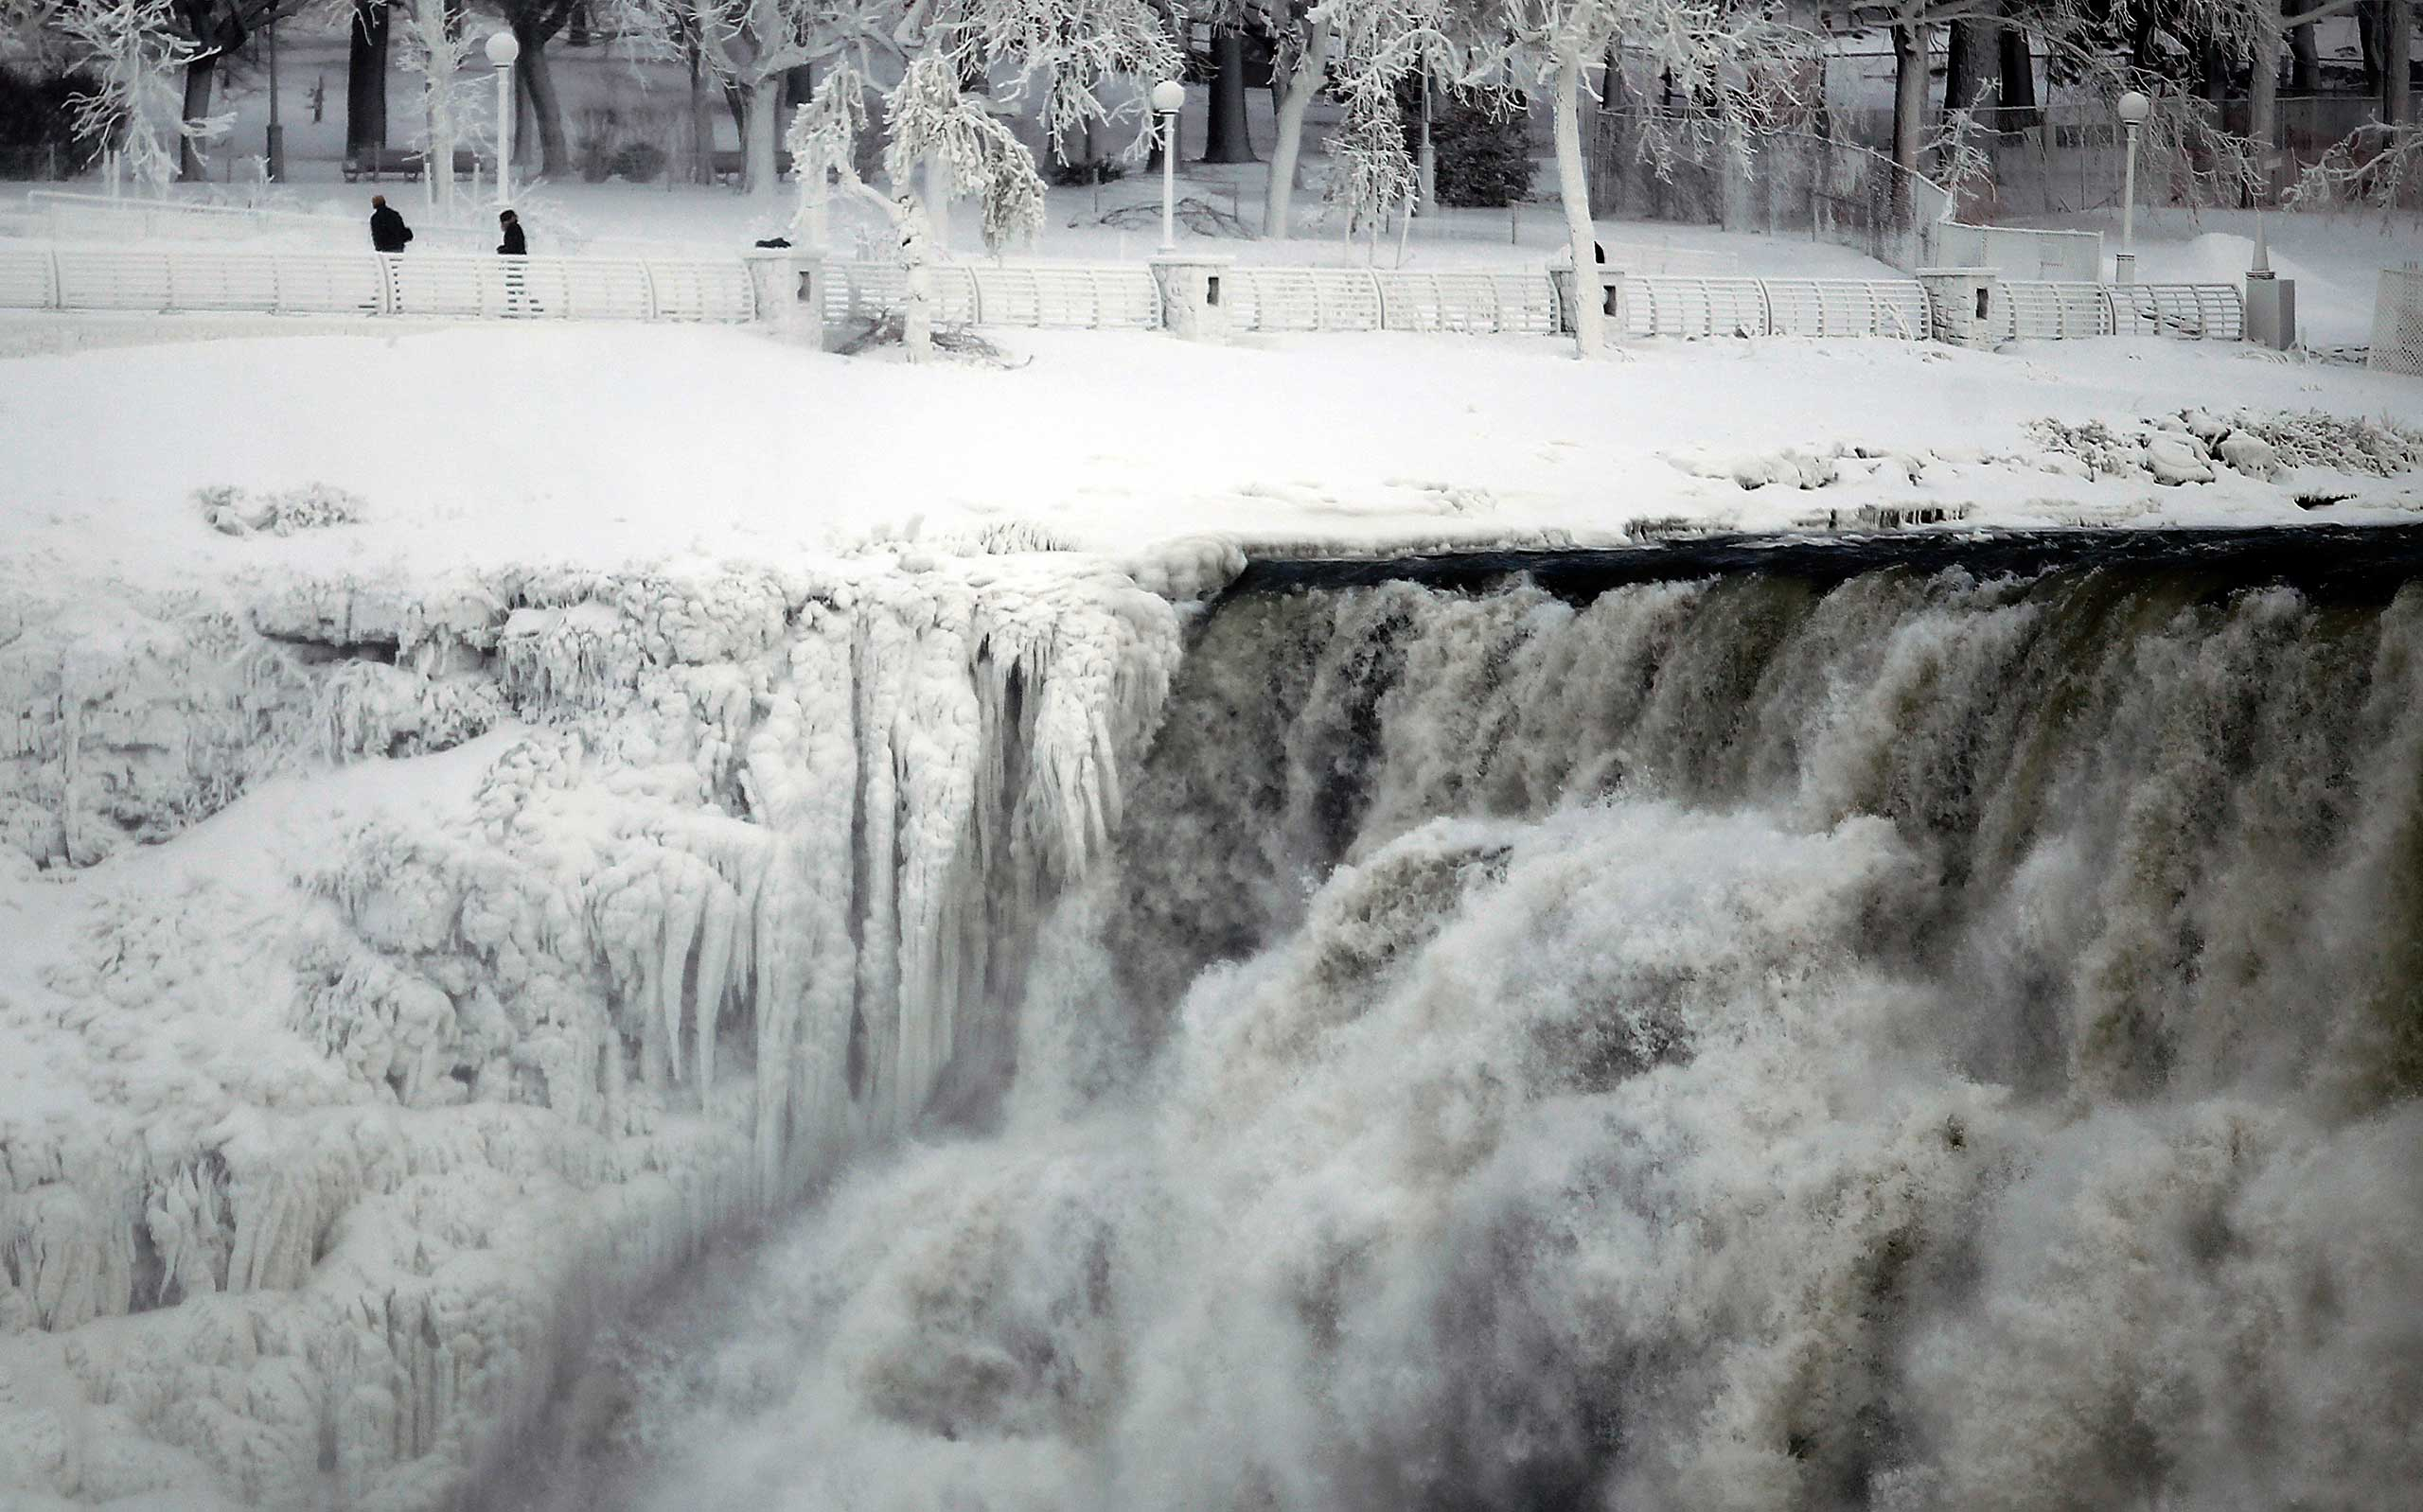 "<b>Polar Vortex</b> The U.S. side of Niagara Falls is pictured in Niagara Falls, N.Y. on Jan. 8, 2014. The frigid air and ""polar vortex"" affected about 240 million people in the United States and southern Canada."